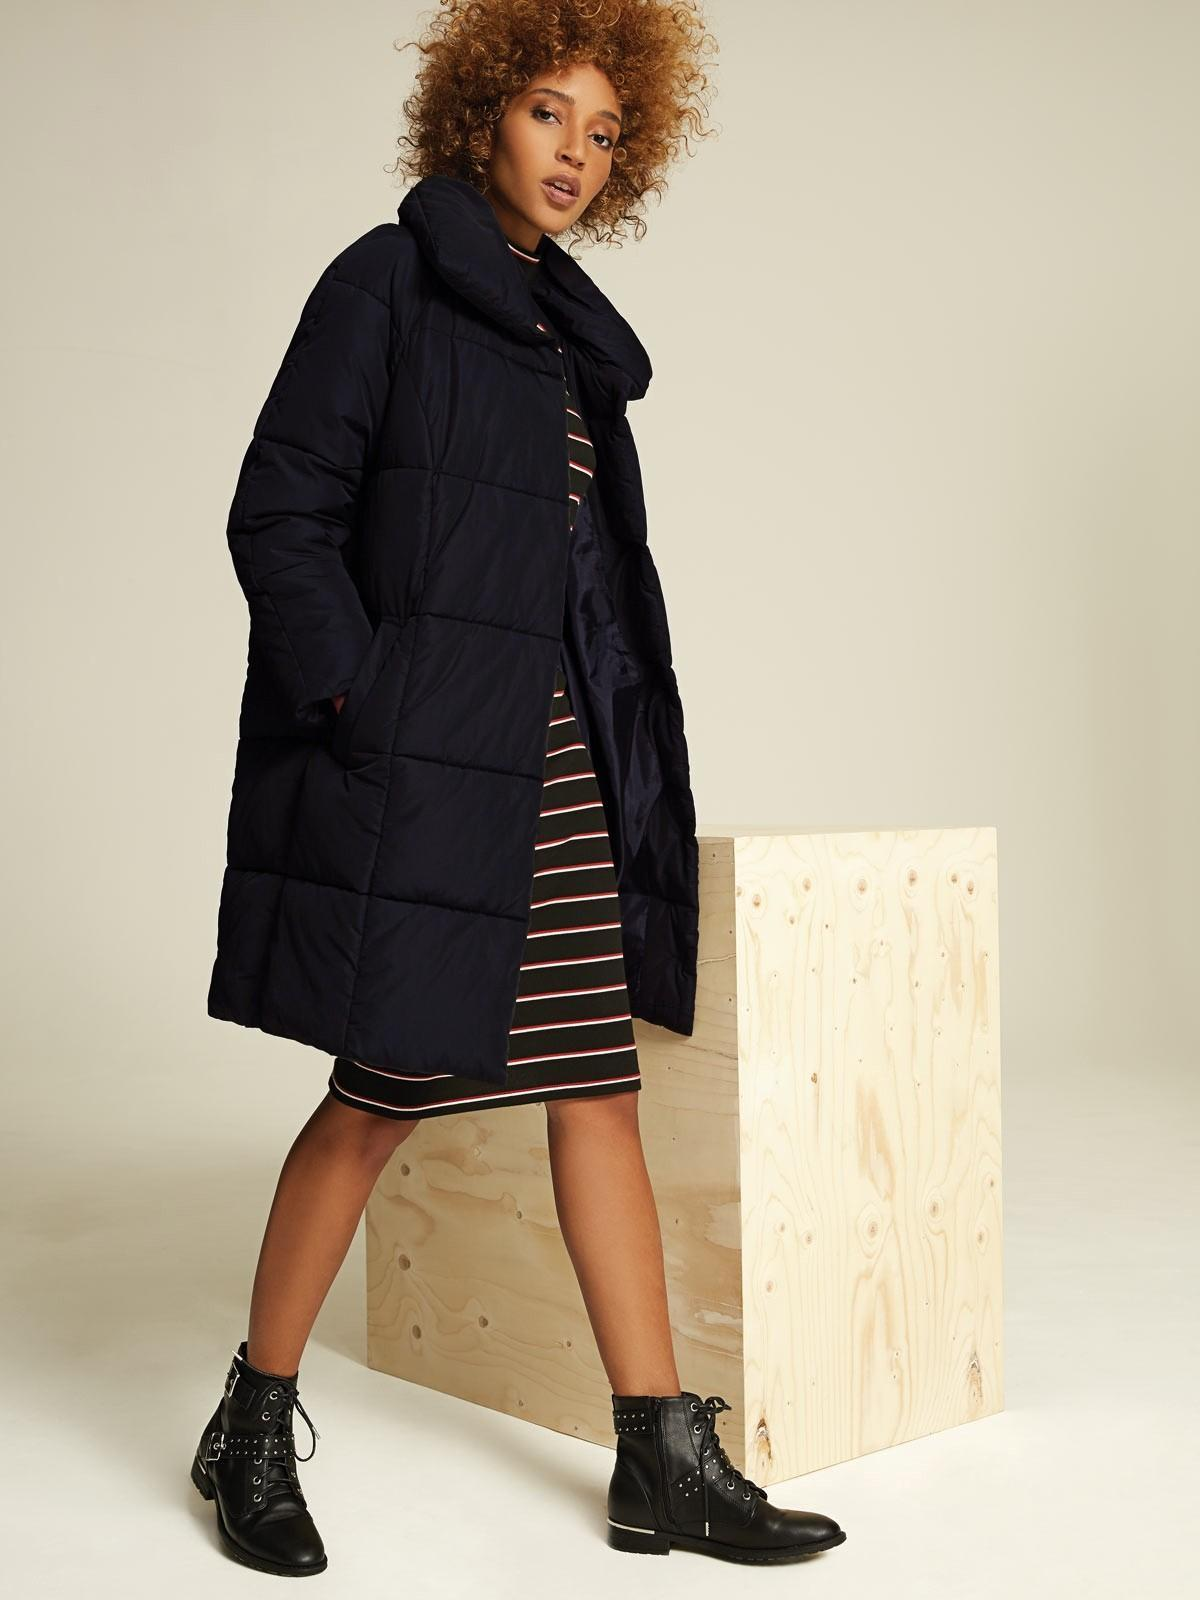 Padding is a great option if you're looking for stylish winter coats that will keep you warm!